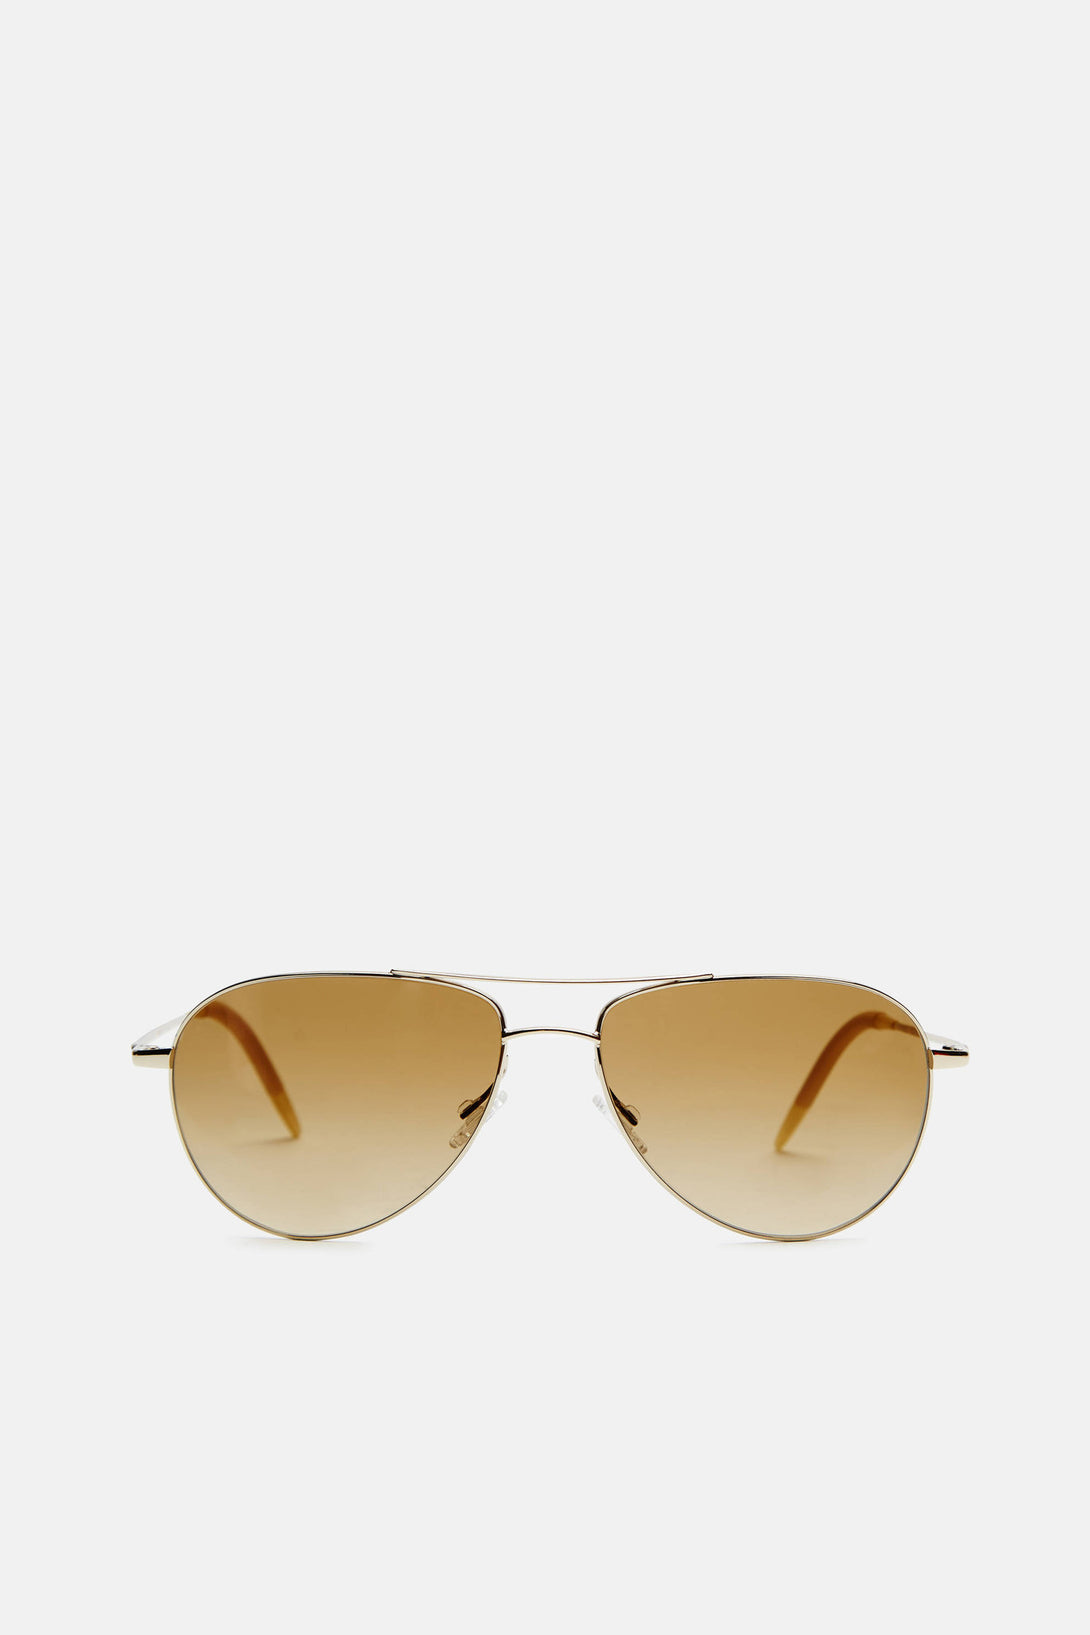 Benedict - Gold with Chrome Amber Photochromic VFX Lens